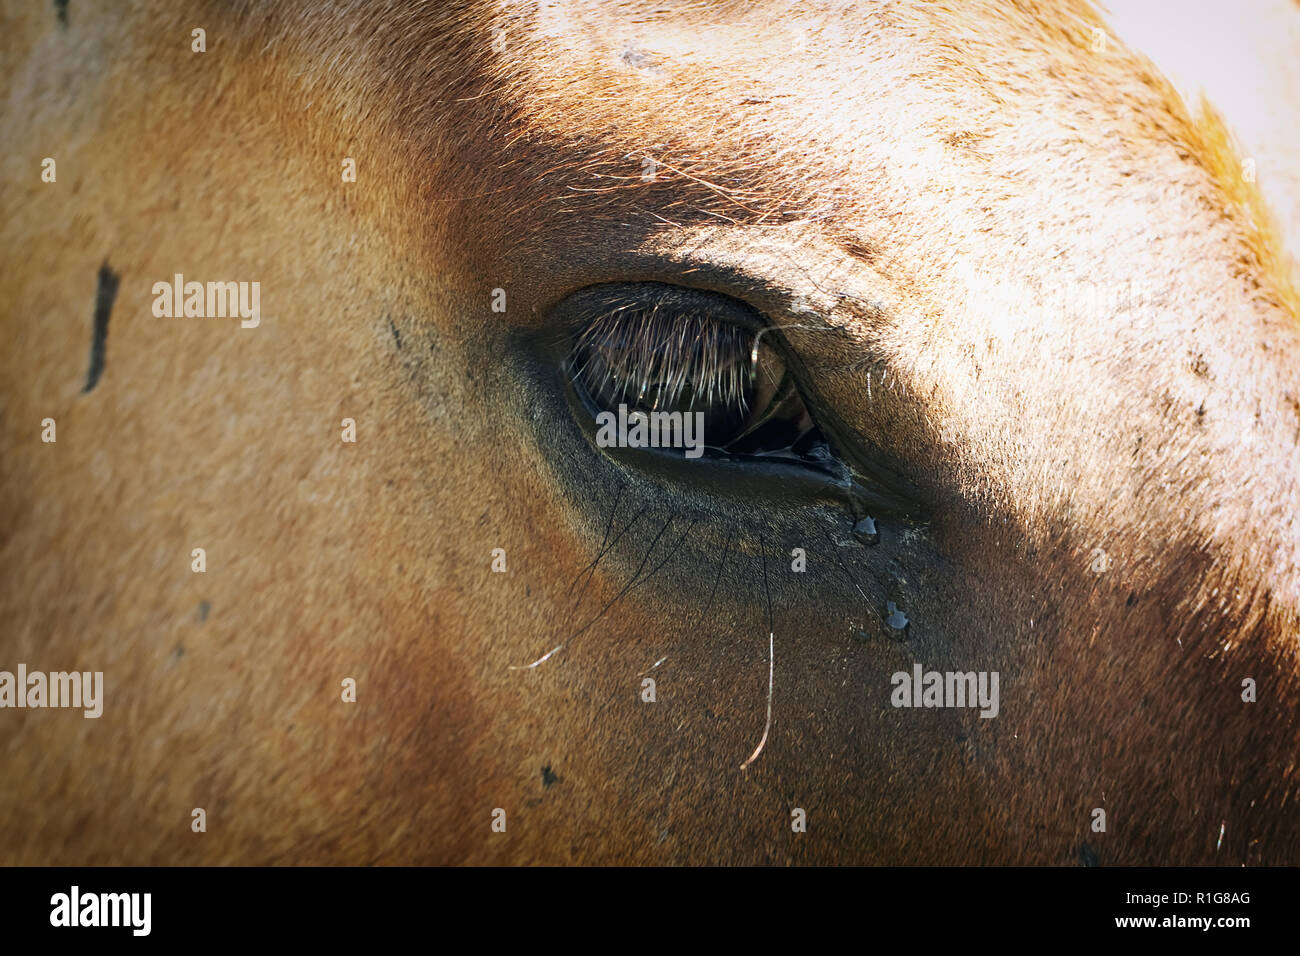 eye of the horse with tears - Stock Image